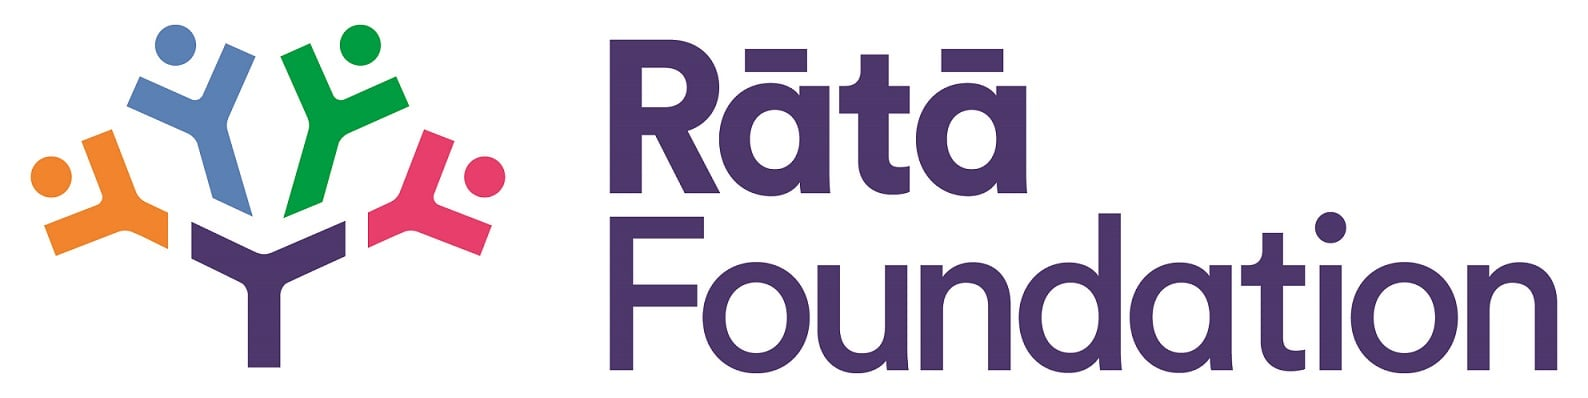 Rata Foundation (previously Cant Comm Trust) logo.JPG